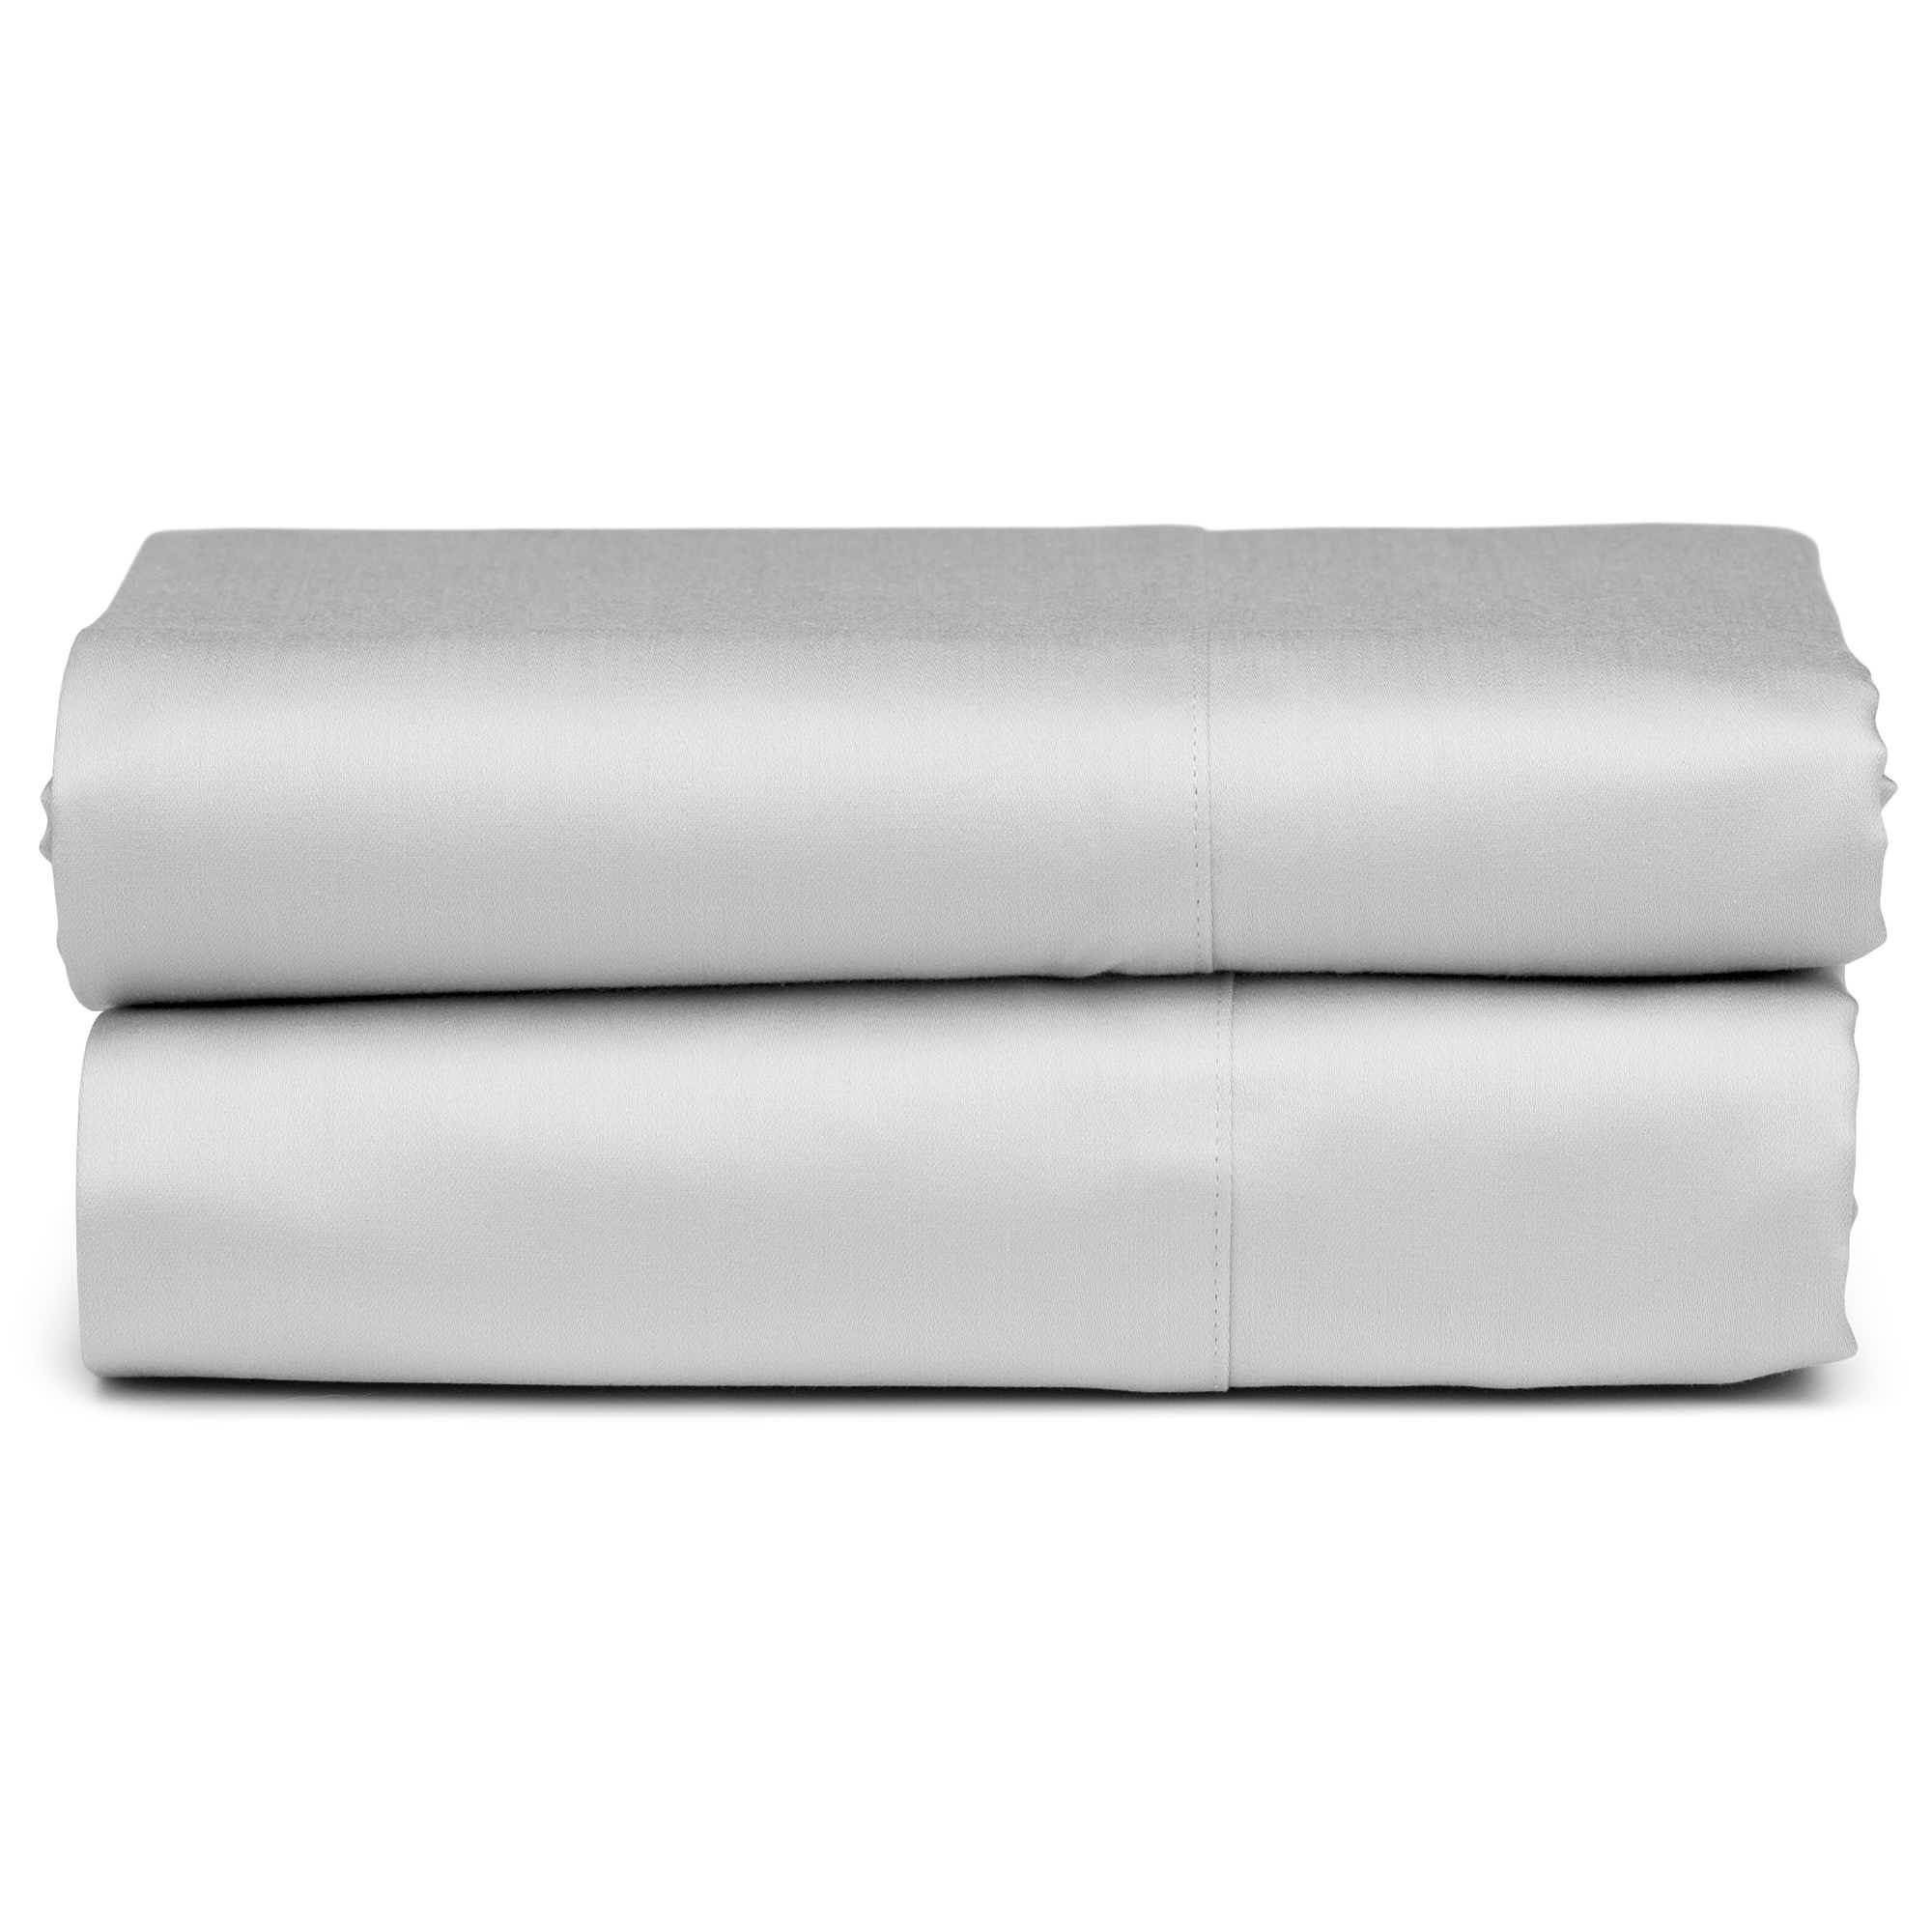 light-gray-luxury-organic-cotton-flat-sheet